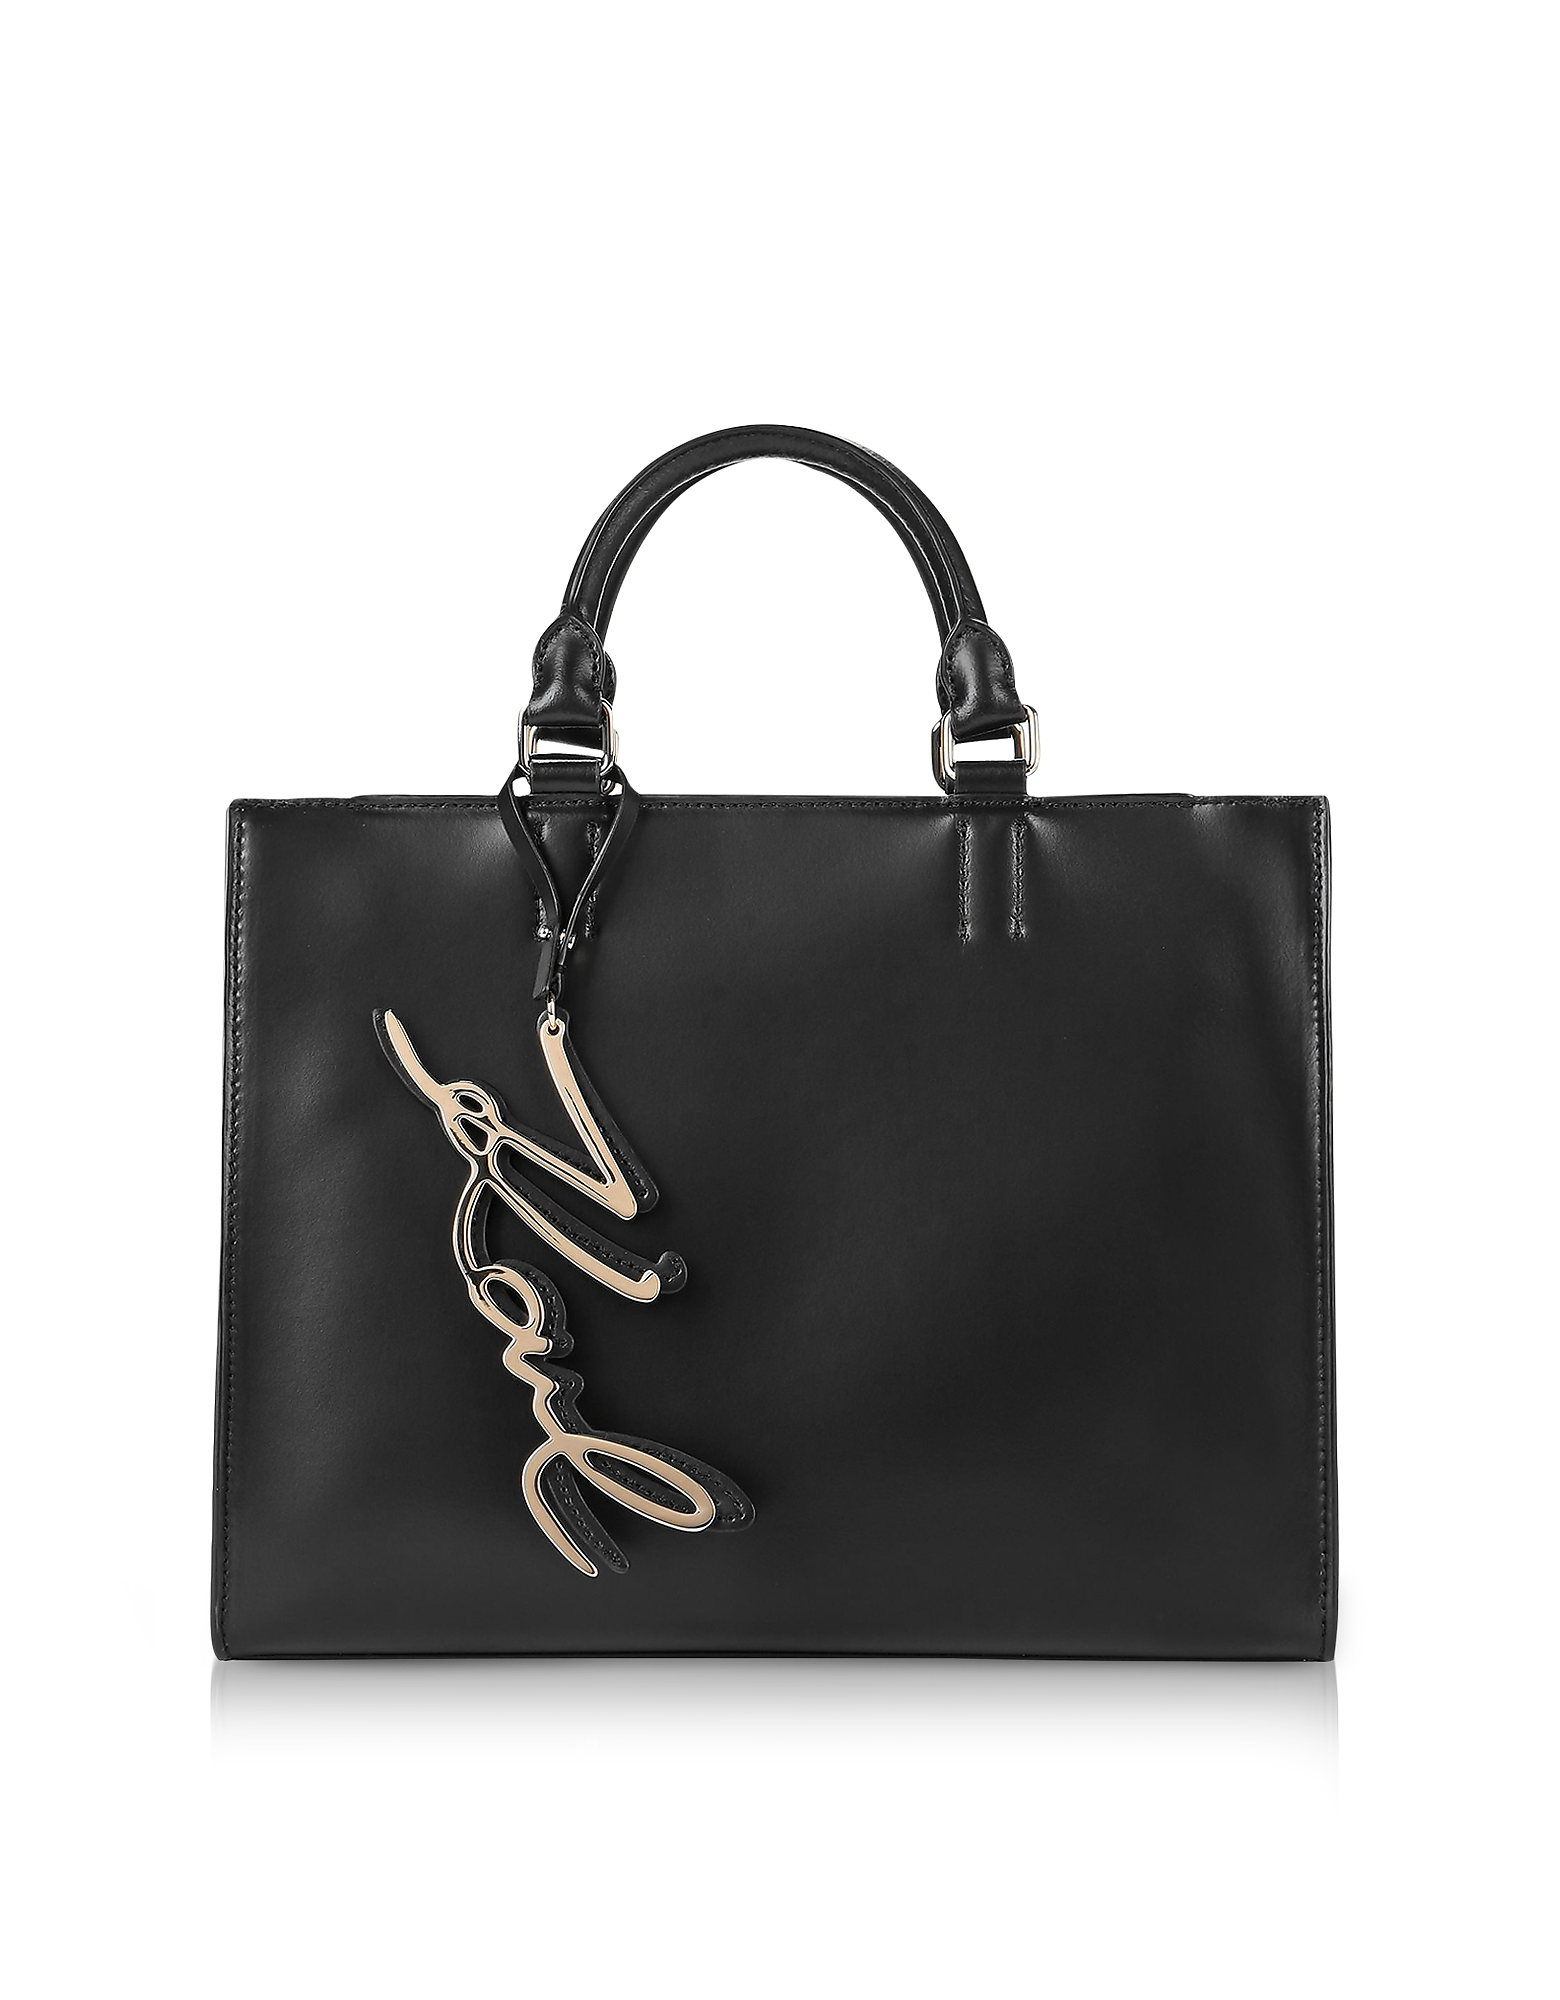 Karl Lagerfeld Handbags, K/Metal Signature Black Leather Shopper Bag